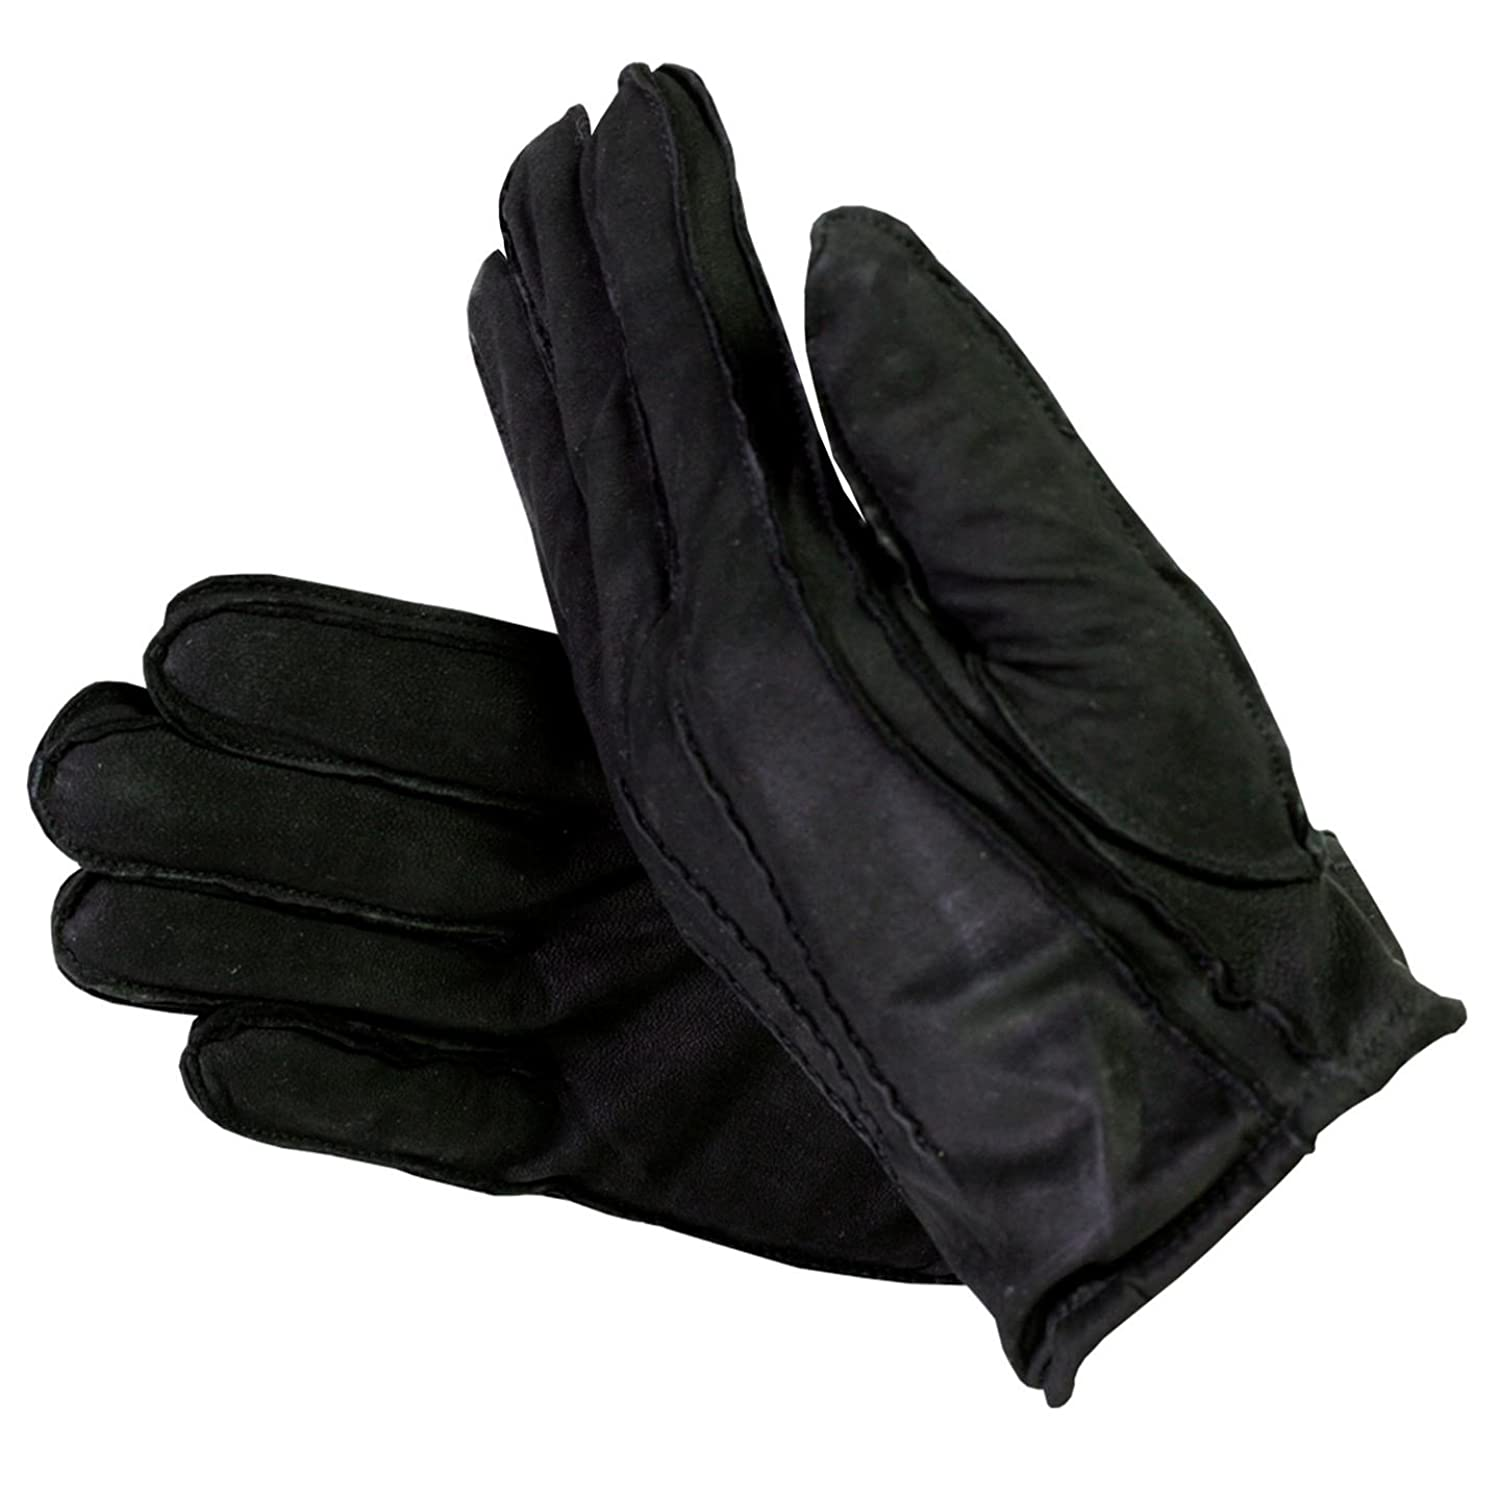 Isotoner womens leather gloves with fleece lining - Isotoner Men S Suede Leather Gloves With Thinsulate Lining Black X Large Good